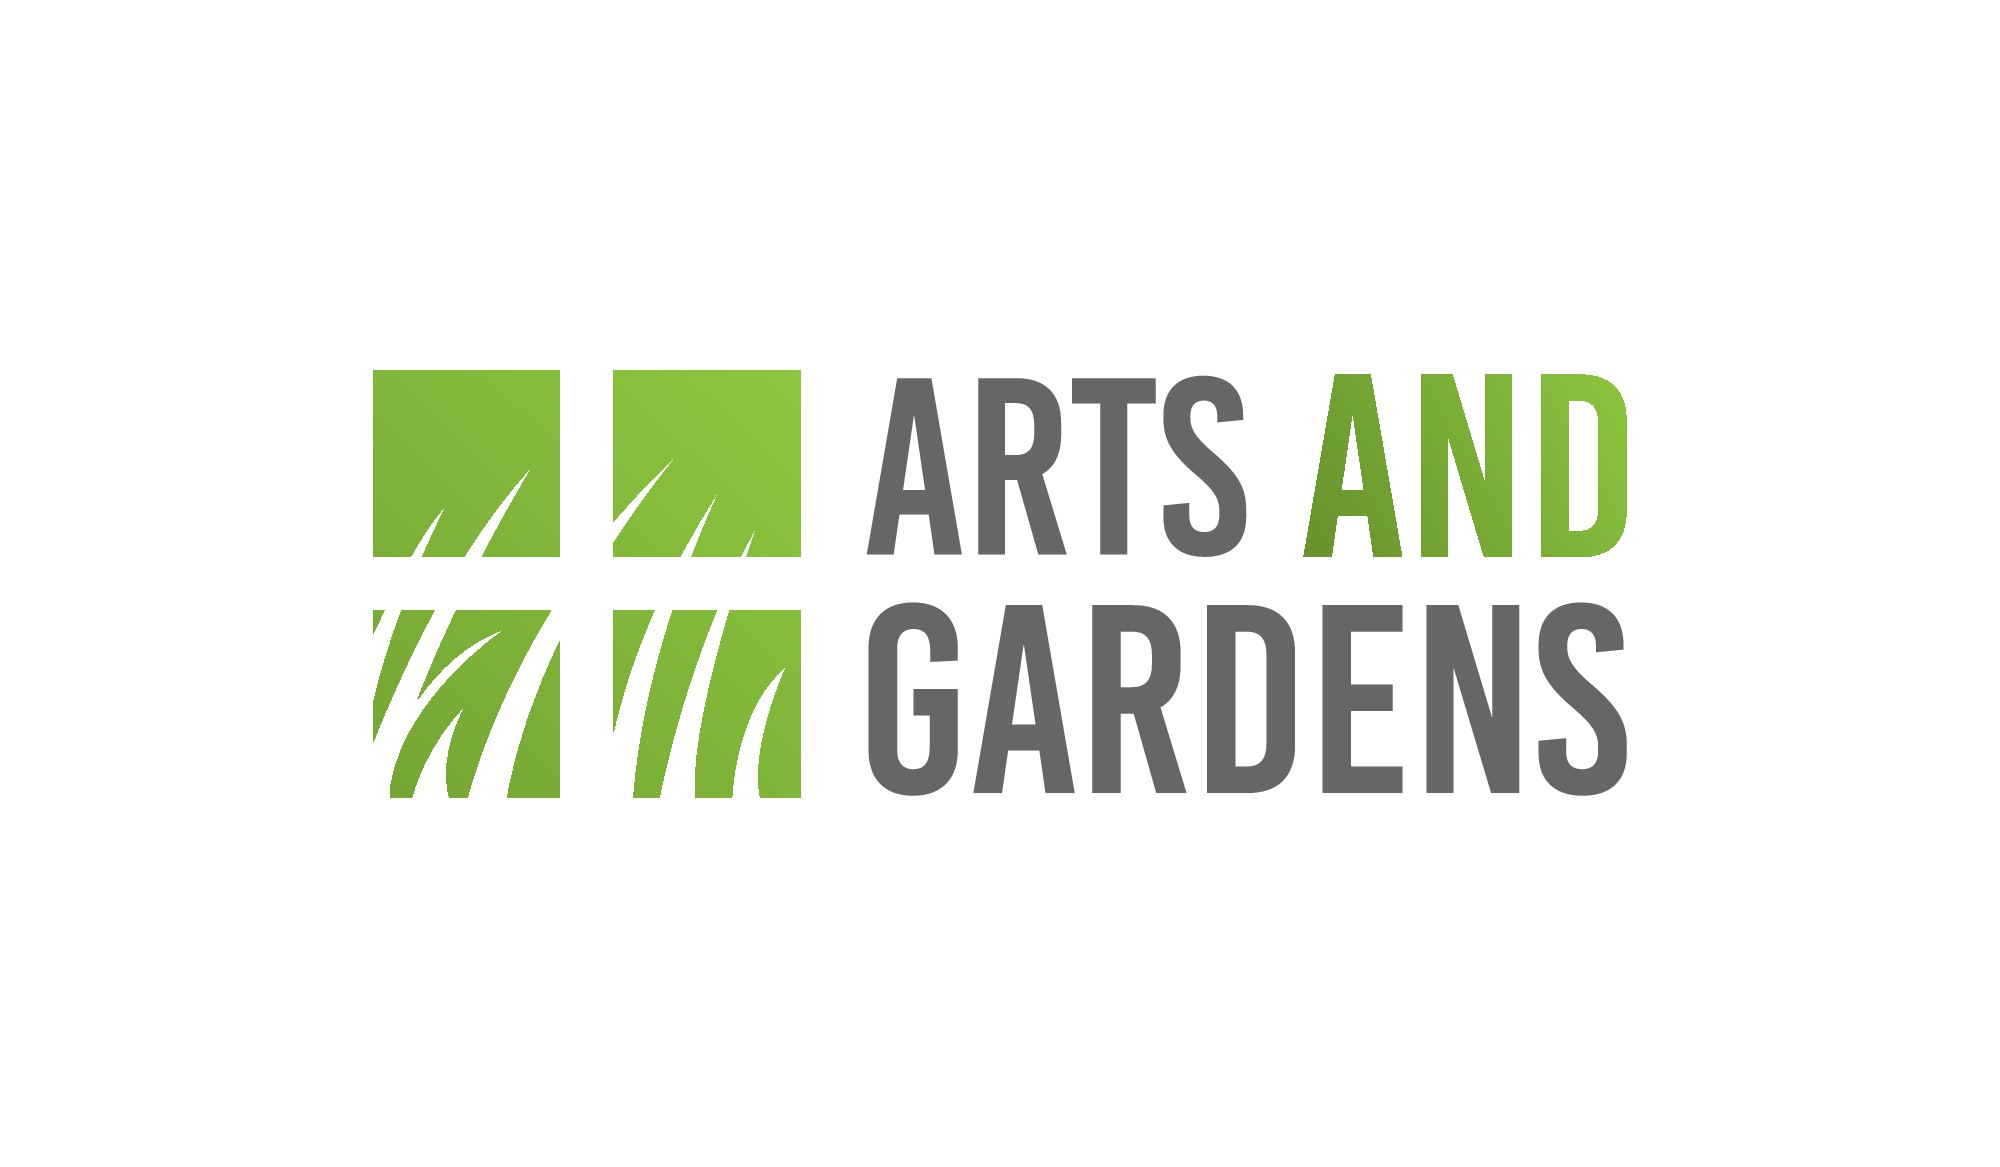 Create logo text that looks at gardens in a new way